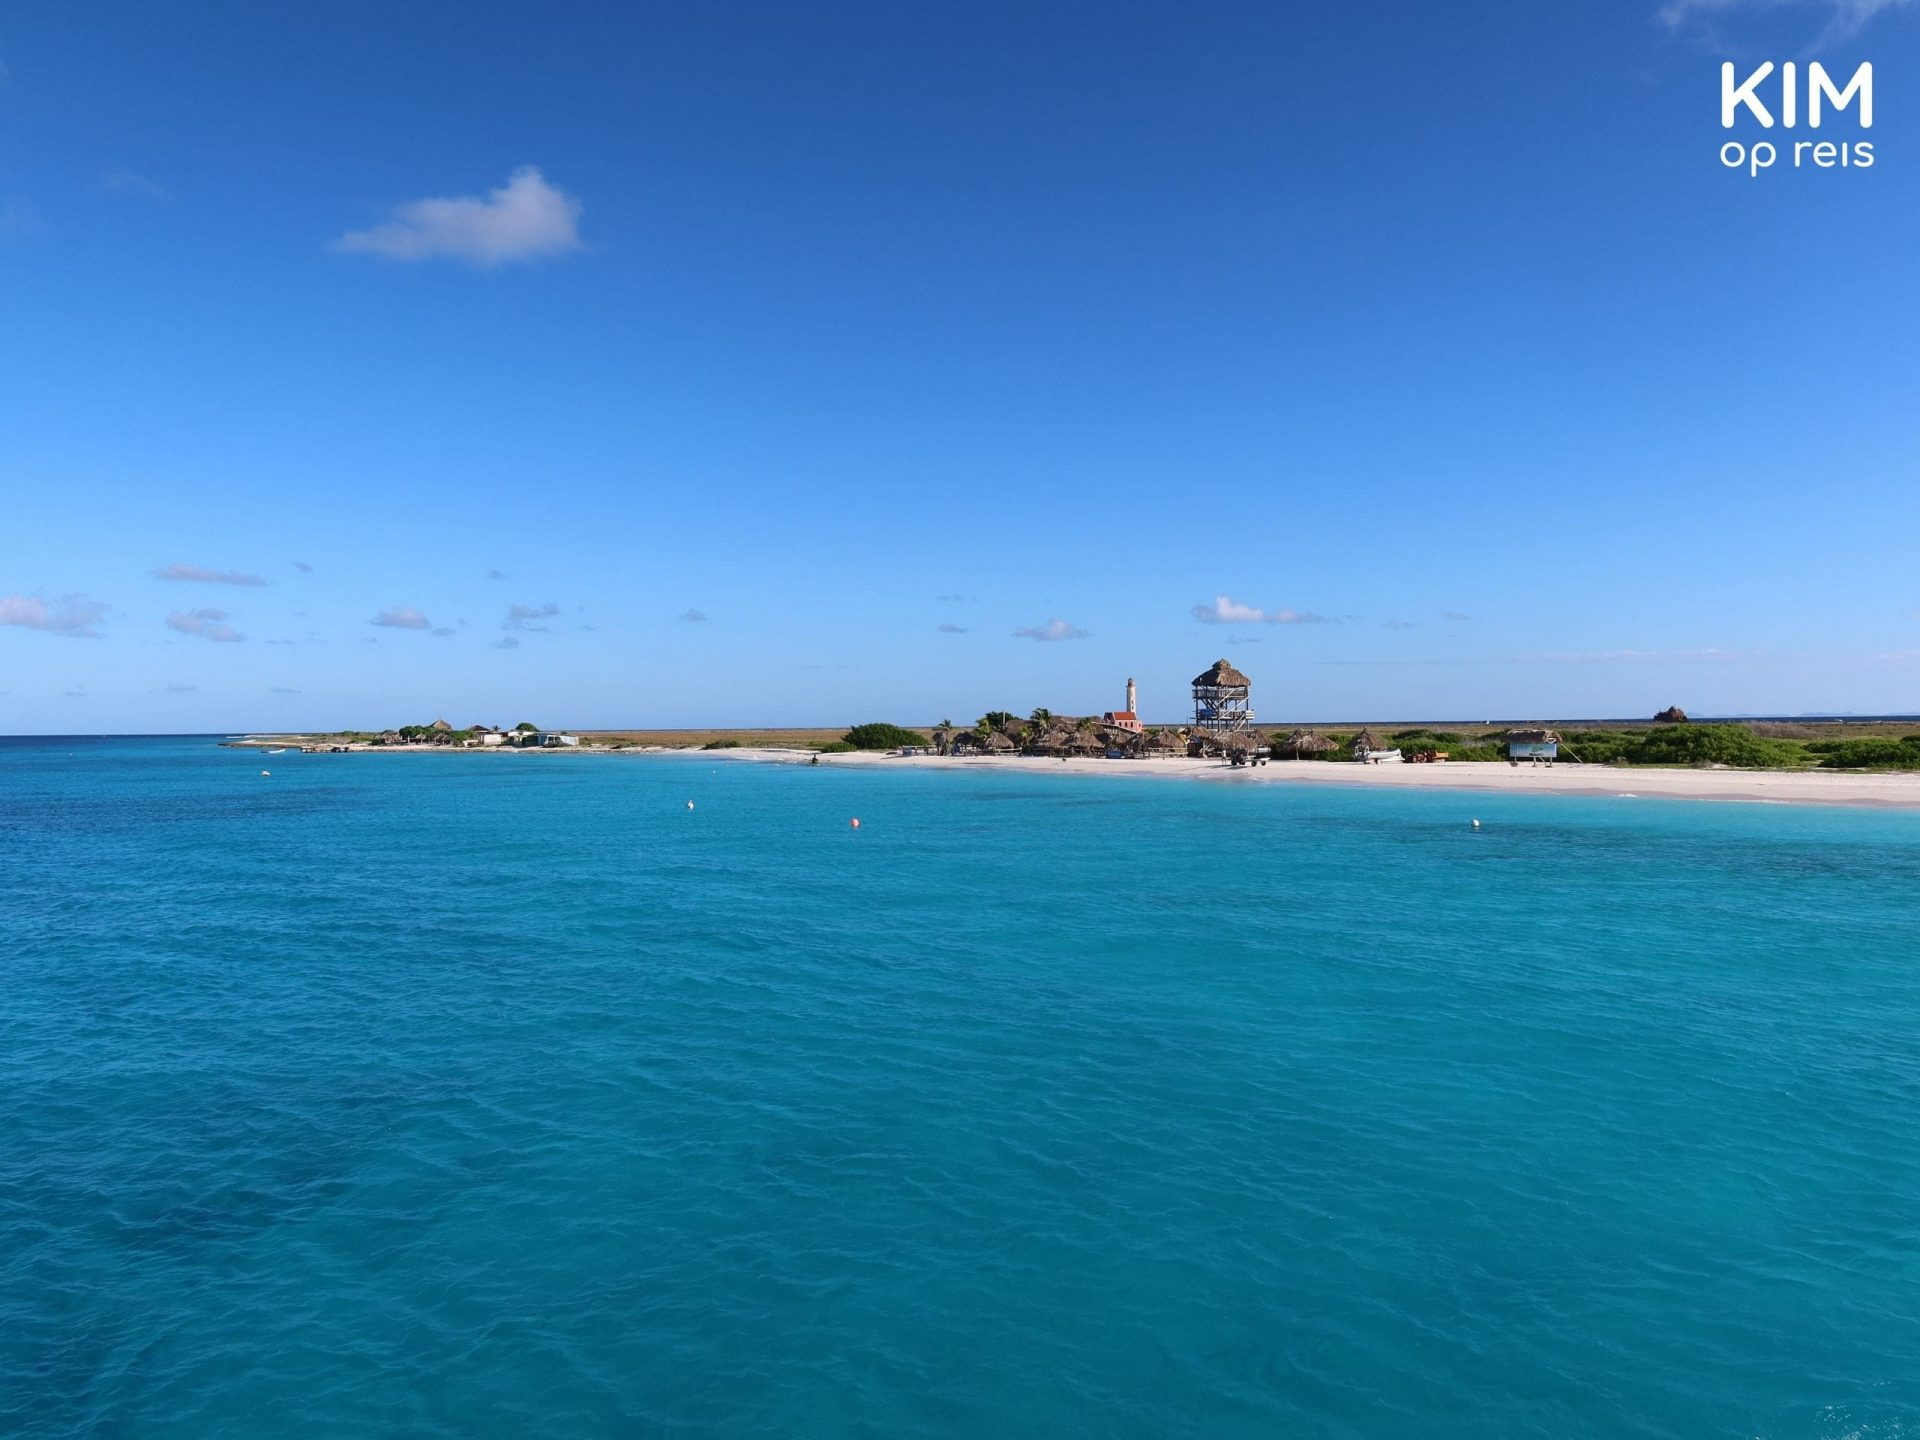 Arrival at Klein Curaçao: part of the island seen from the boat.